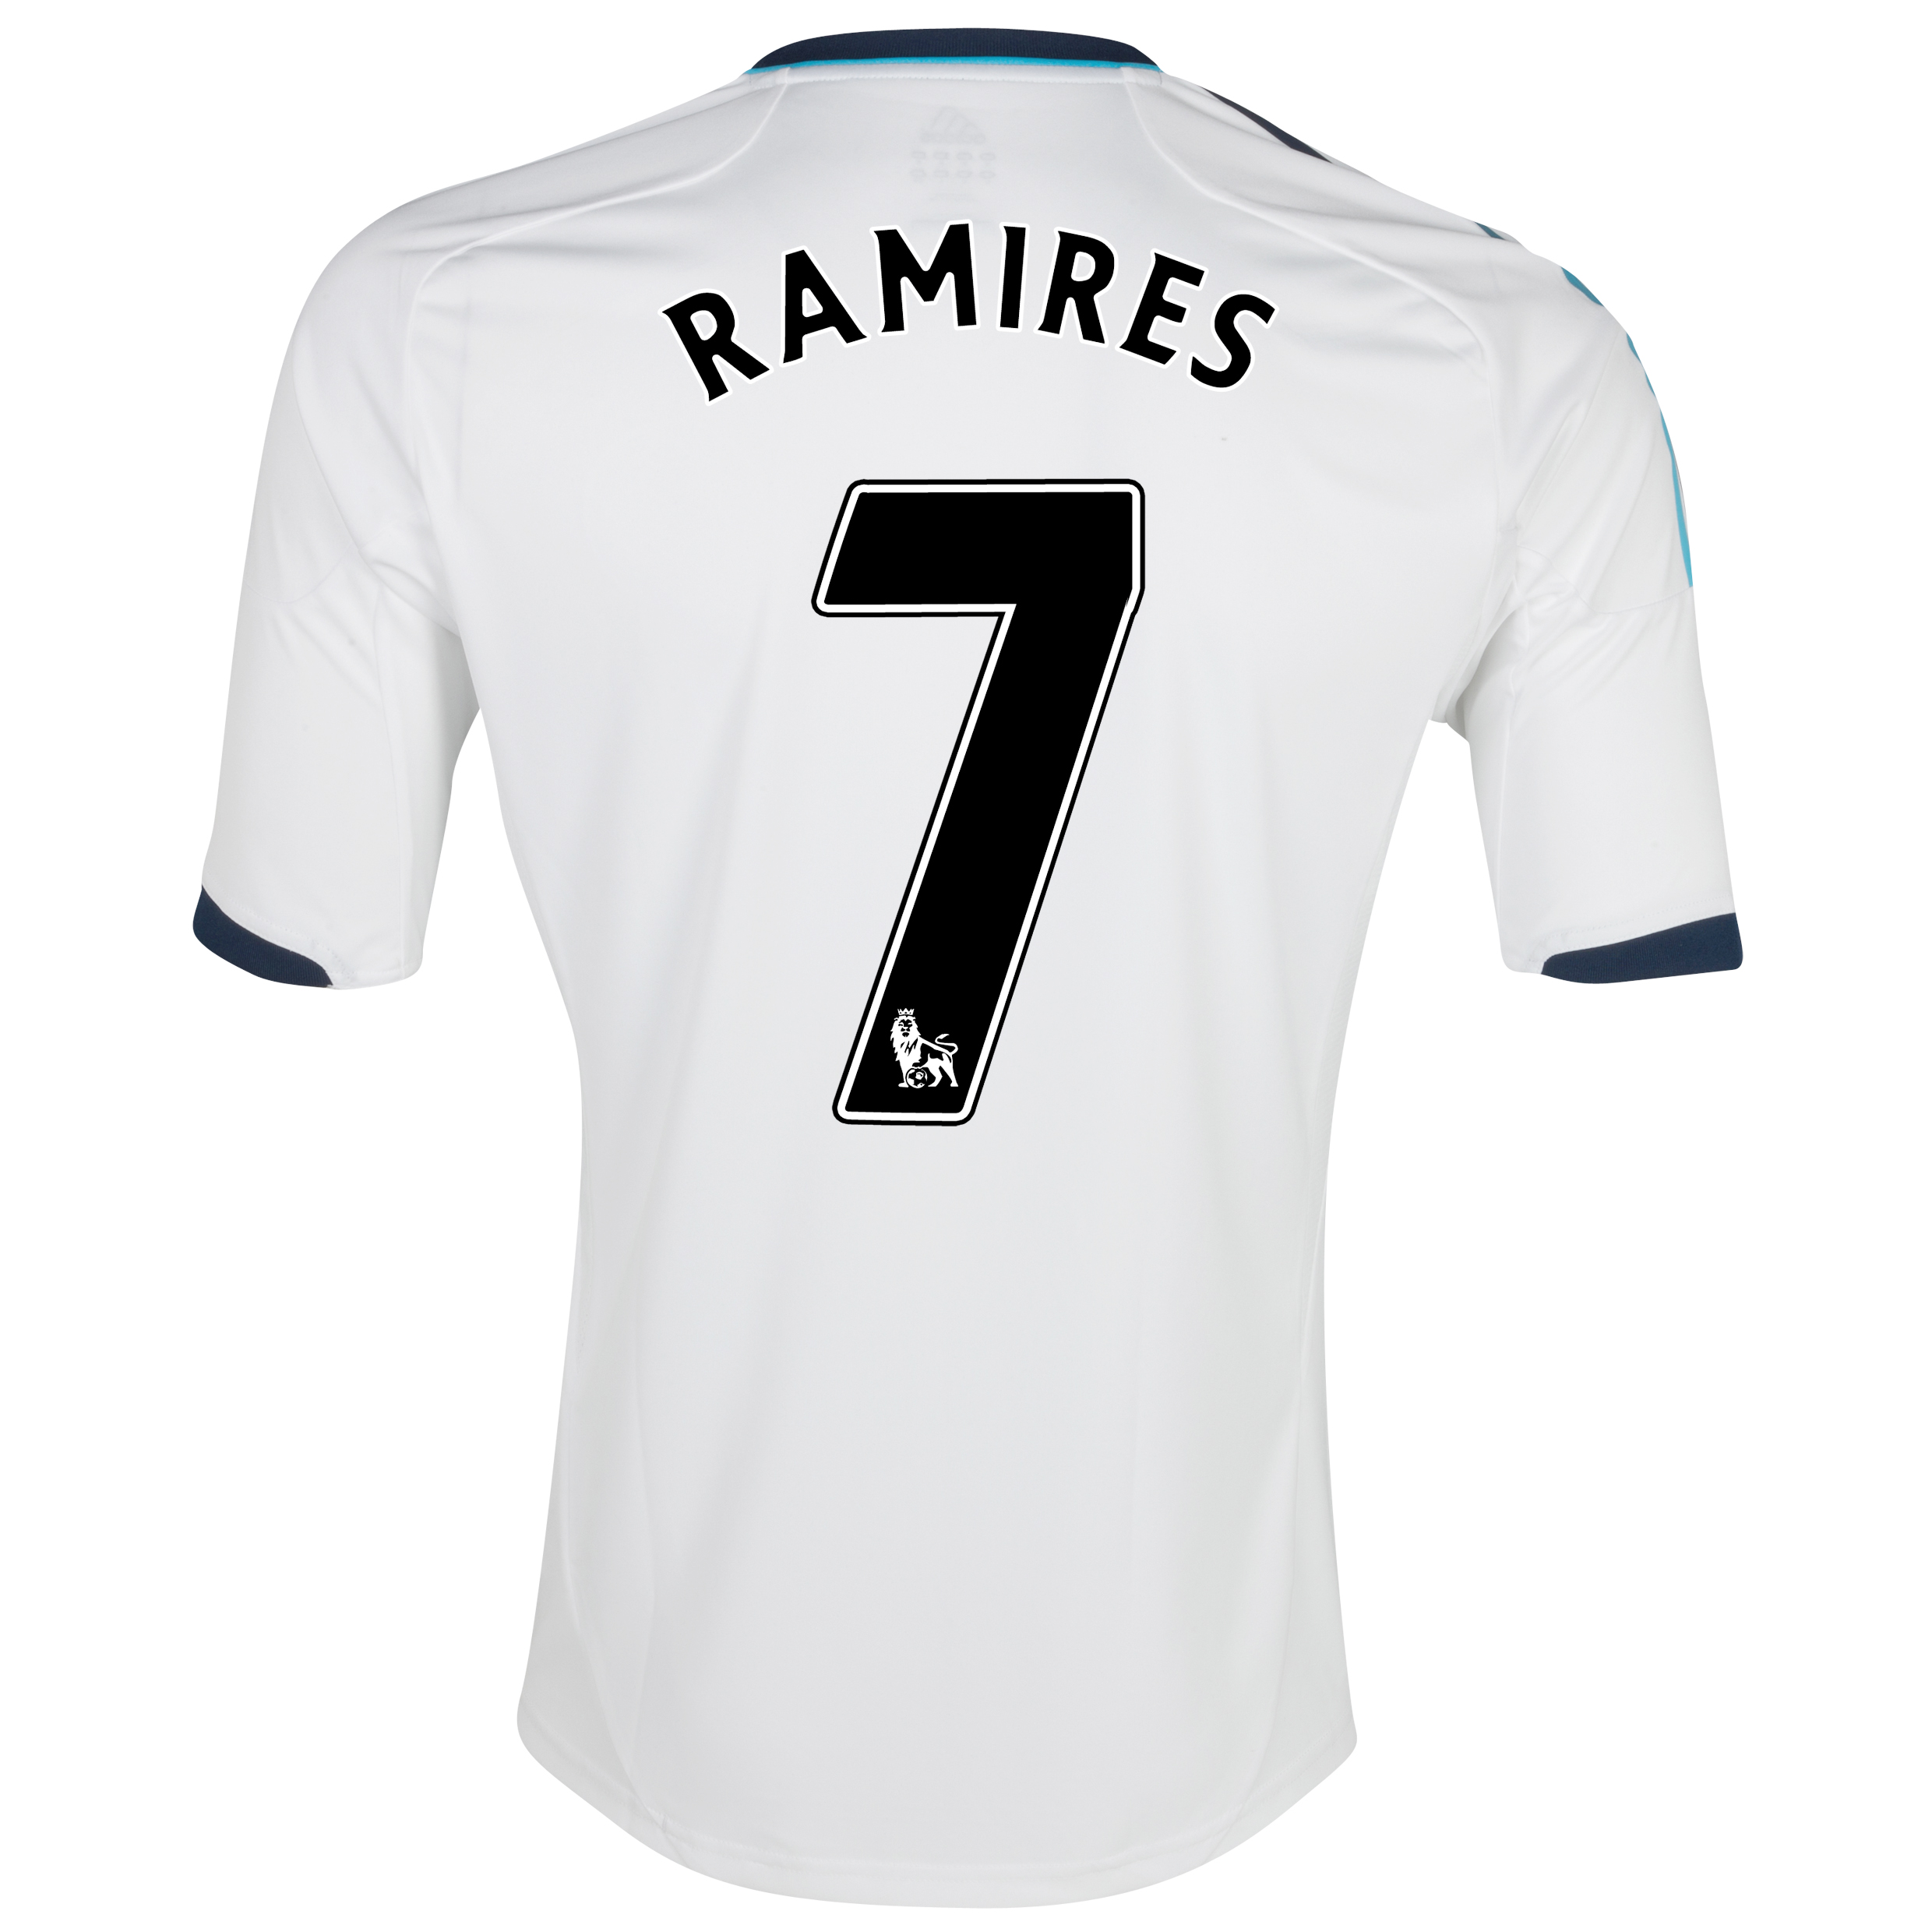 Chelsea Away Shirt 2012/13 with Ramires 7 printing